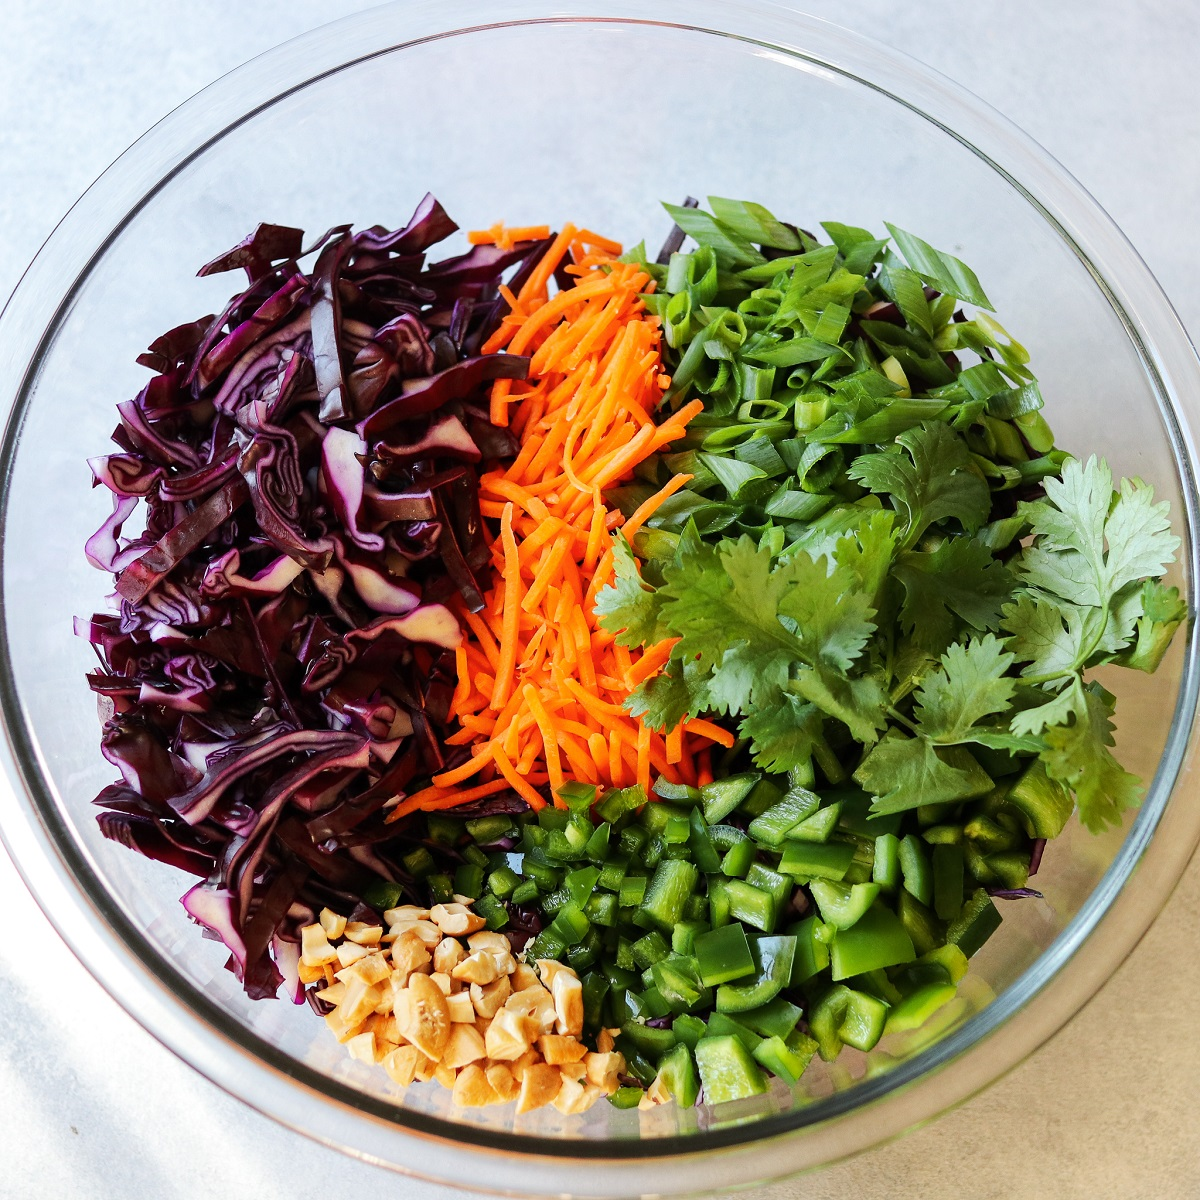 Slaw ingredients piled in large glass bowl ready to be mixed.